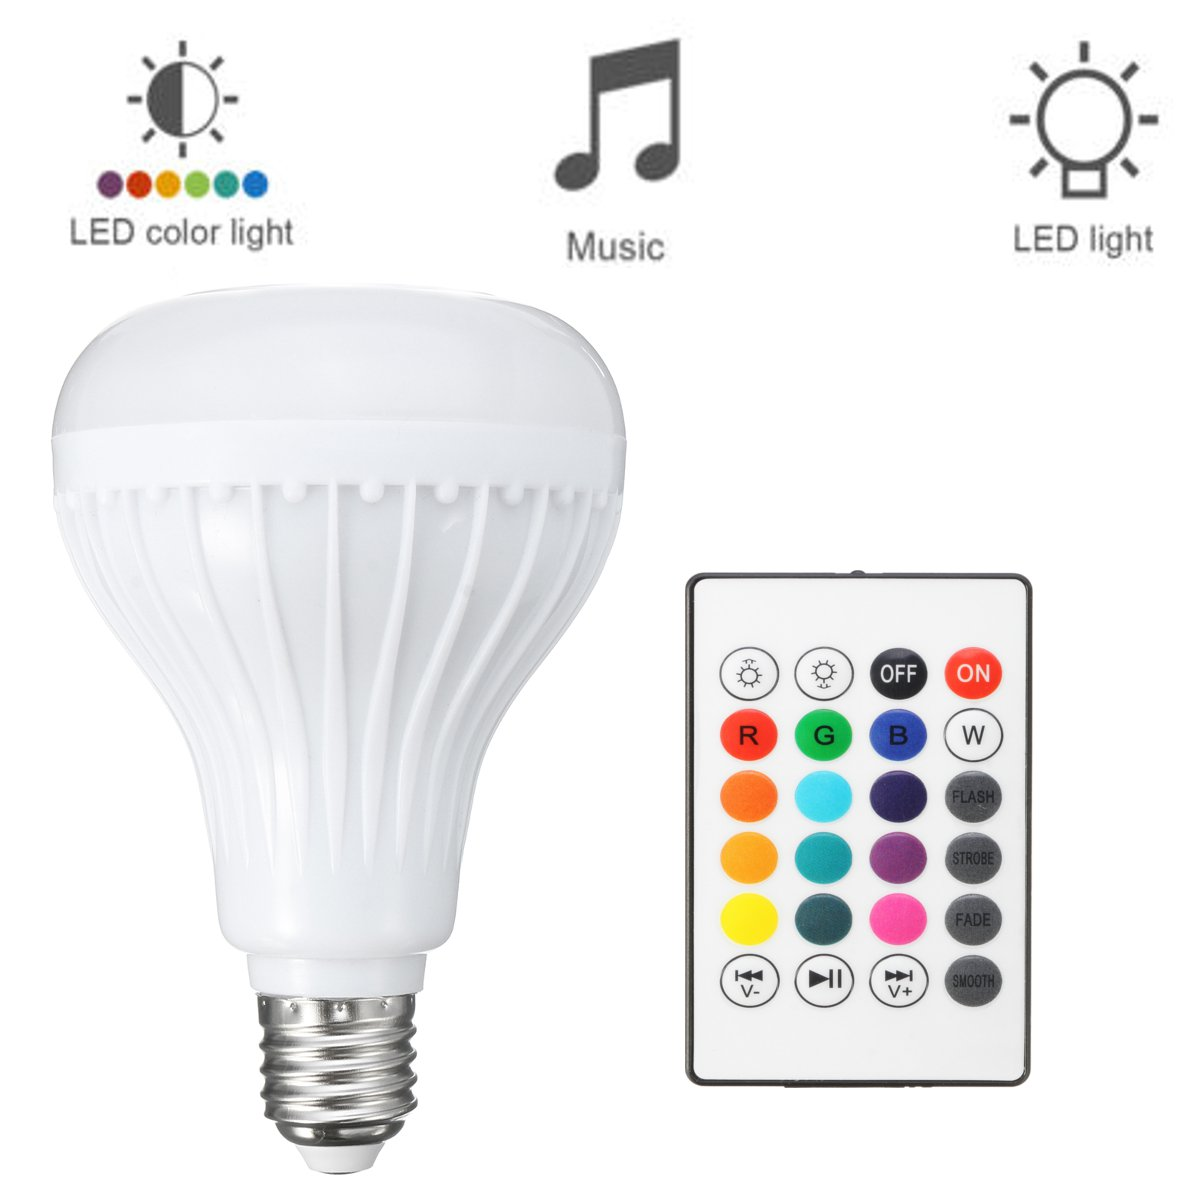 E27 15W RGBW Wireless bluetooth Speaker Music Play LED Smart Light Bulb + Remote AC100-240V